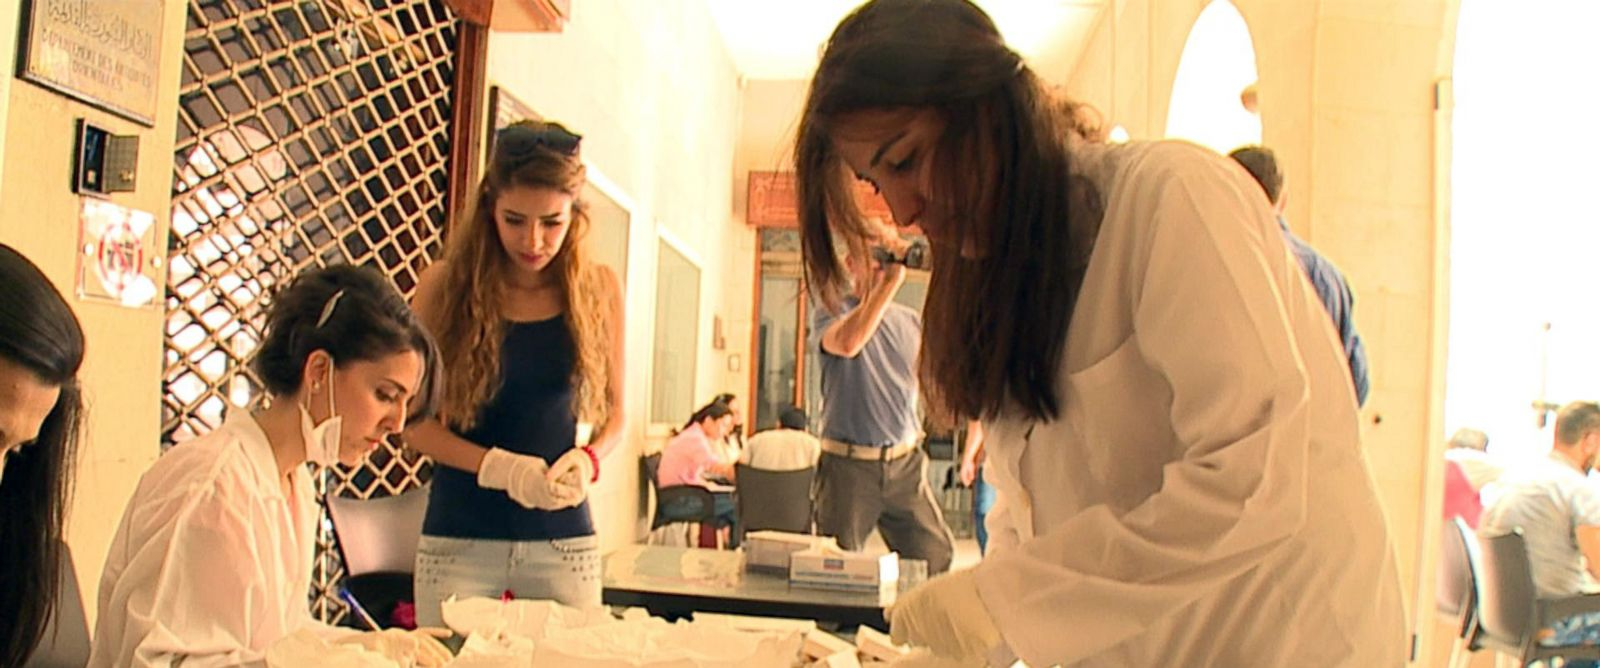 PHOTO: A group of young archaeologists are working to quickly document, measure and photograph every item in the National Museum of Damascus collection.